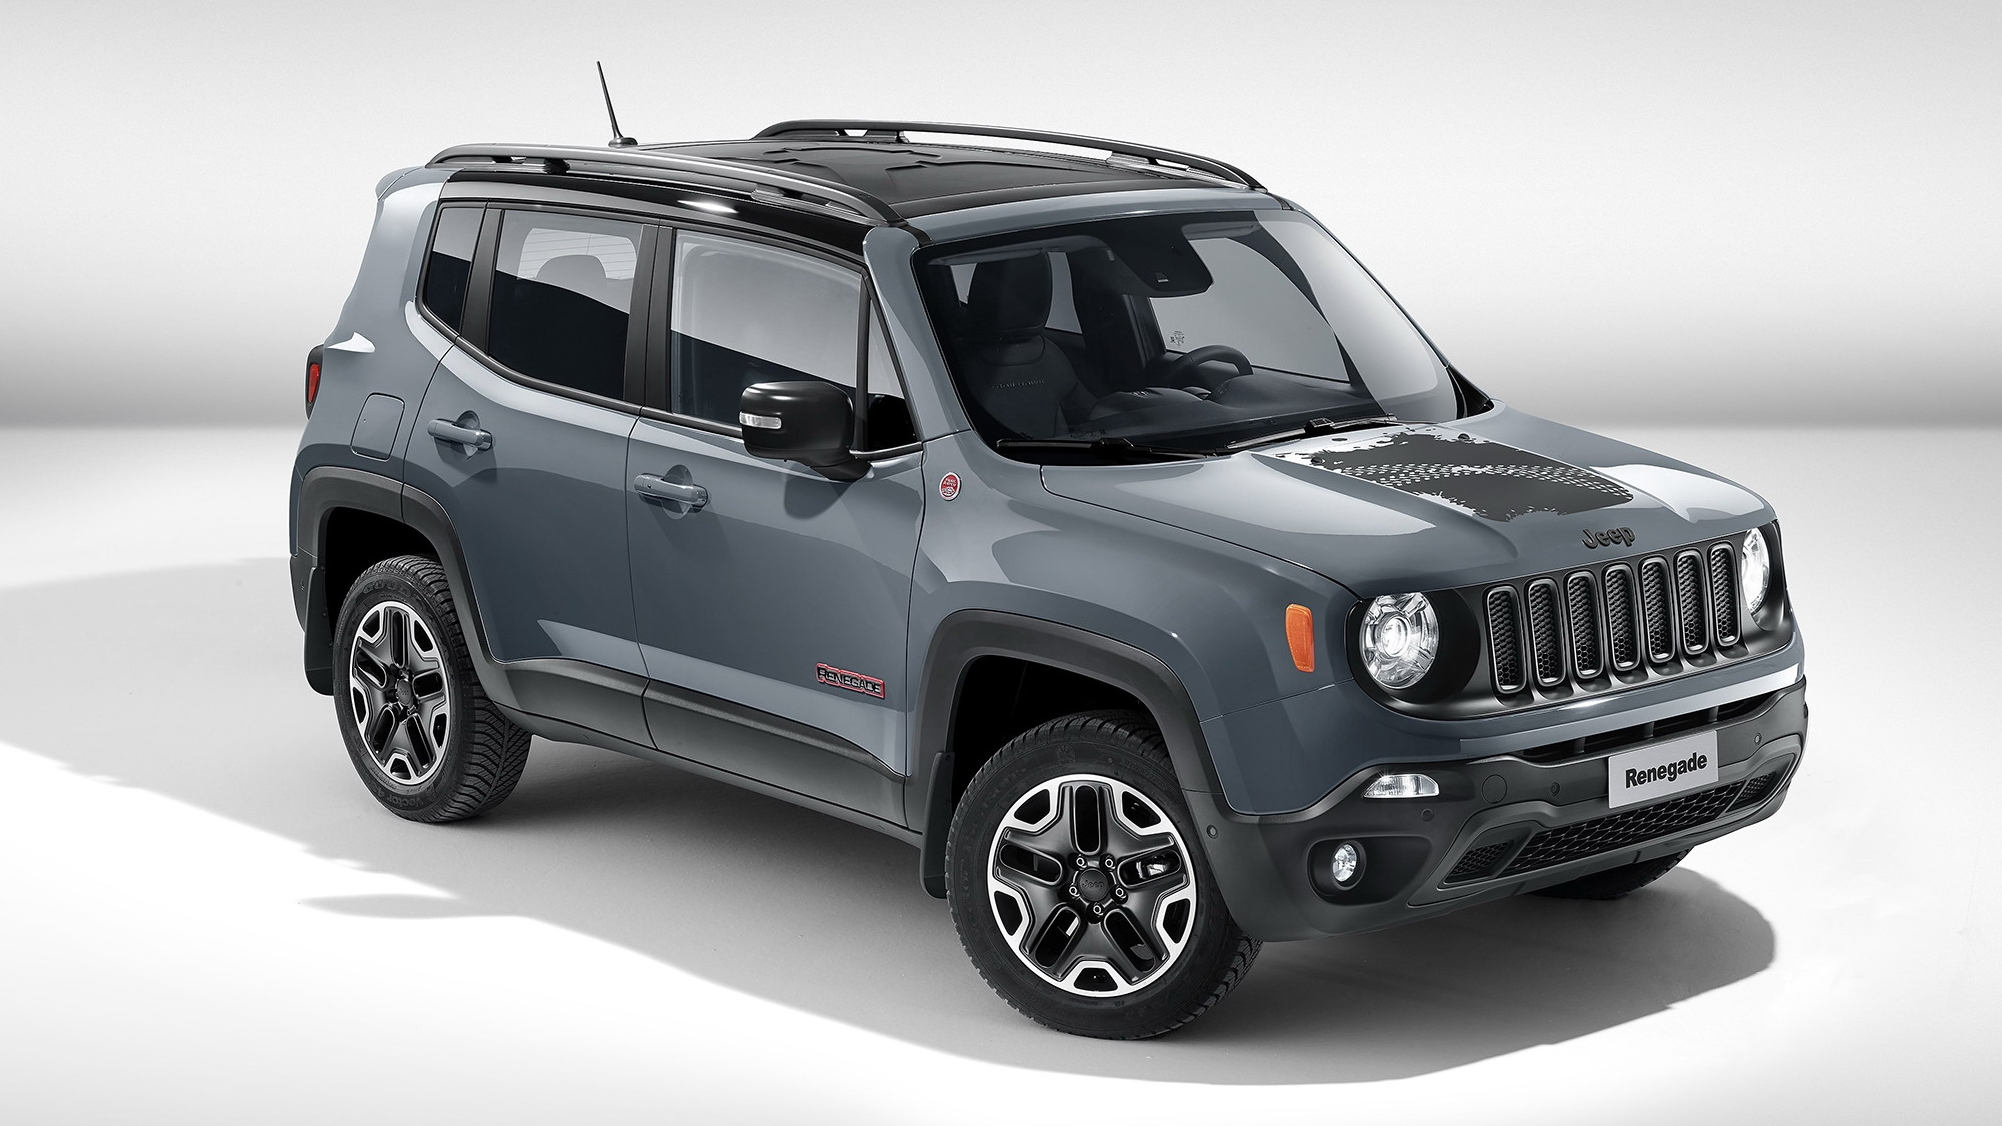 2015 Jeep Renegade Trailhawk Pictures, Photos, Wallpapers ...